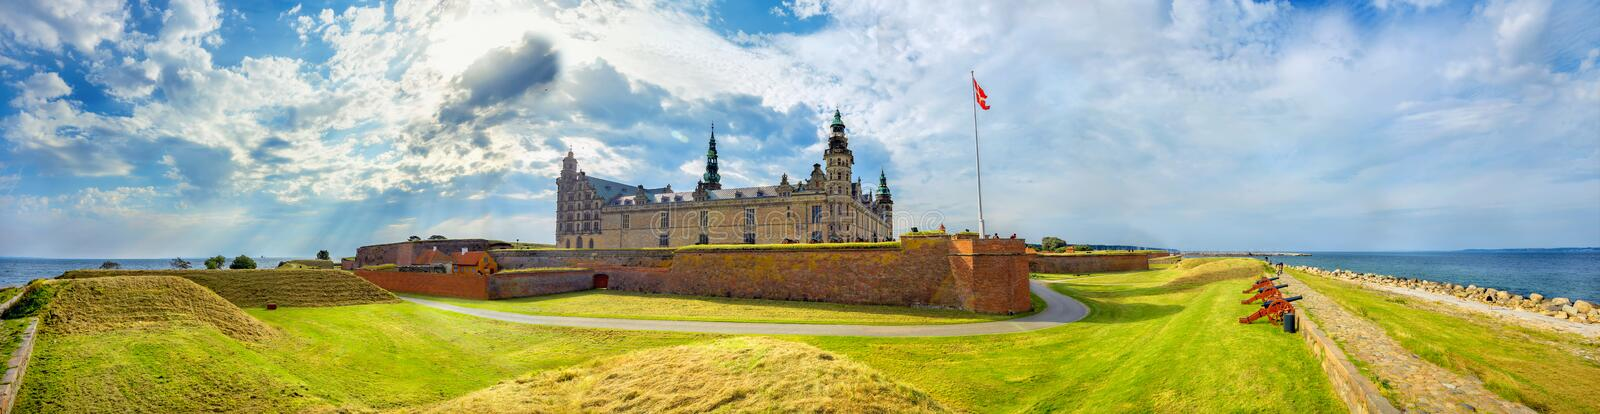 Fortifications with cannons and walls of fortress in Kronborg castle Castle of Hamlet. Helsingor, Denmark. Wide panoramic view of fortifications with defense stock image